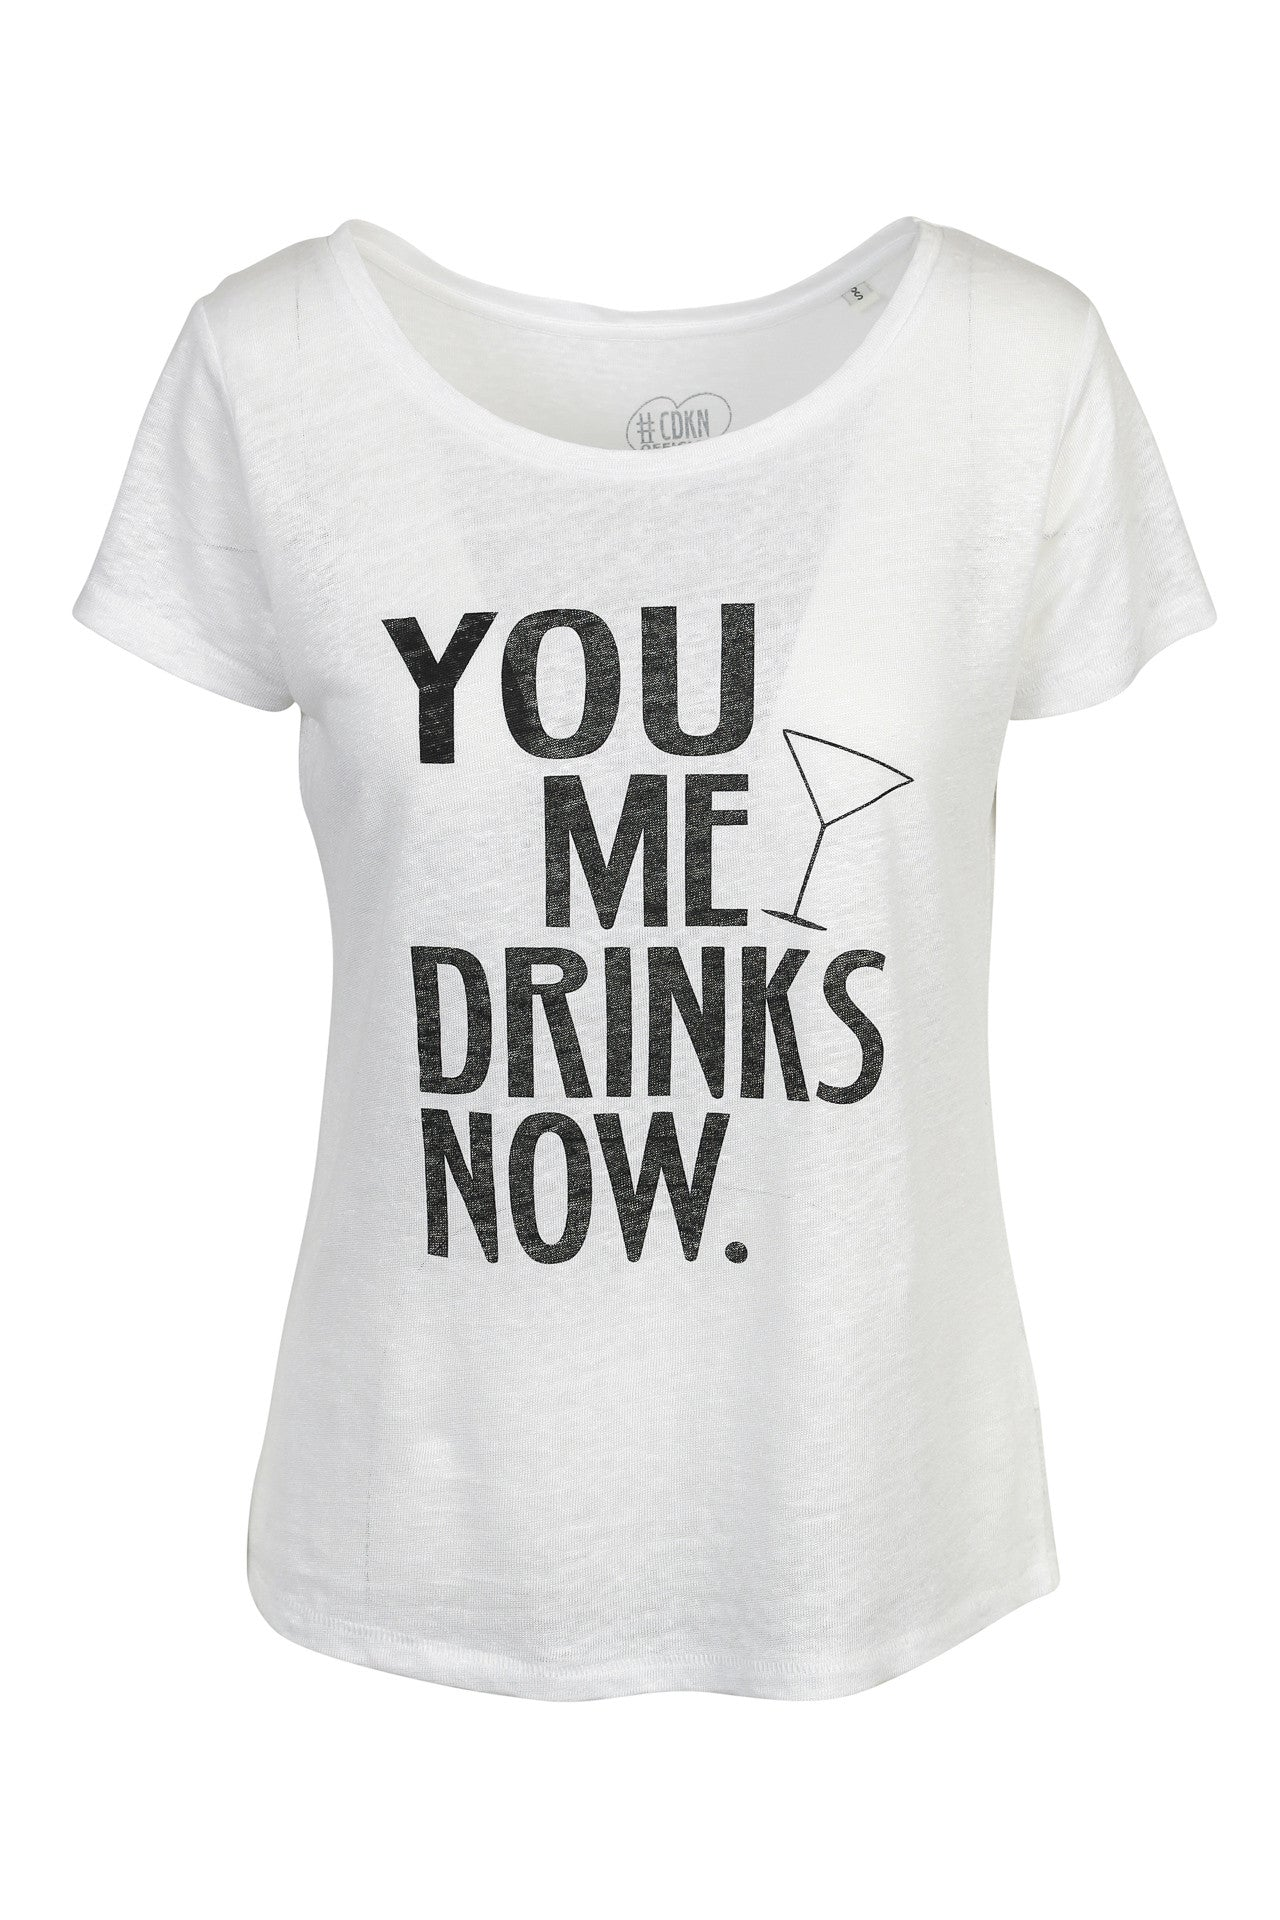 You. Me. Drinks. Now. - Linen tee